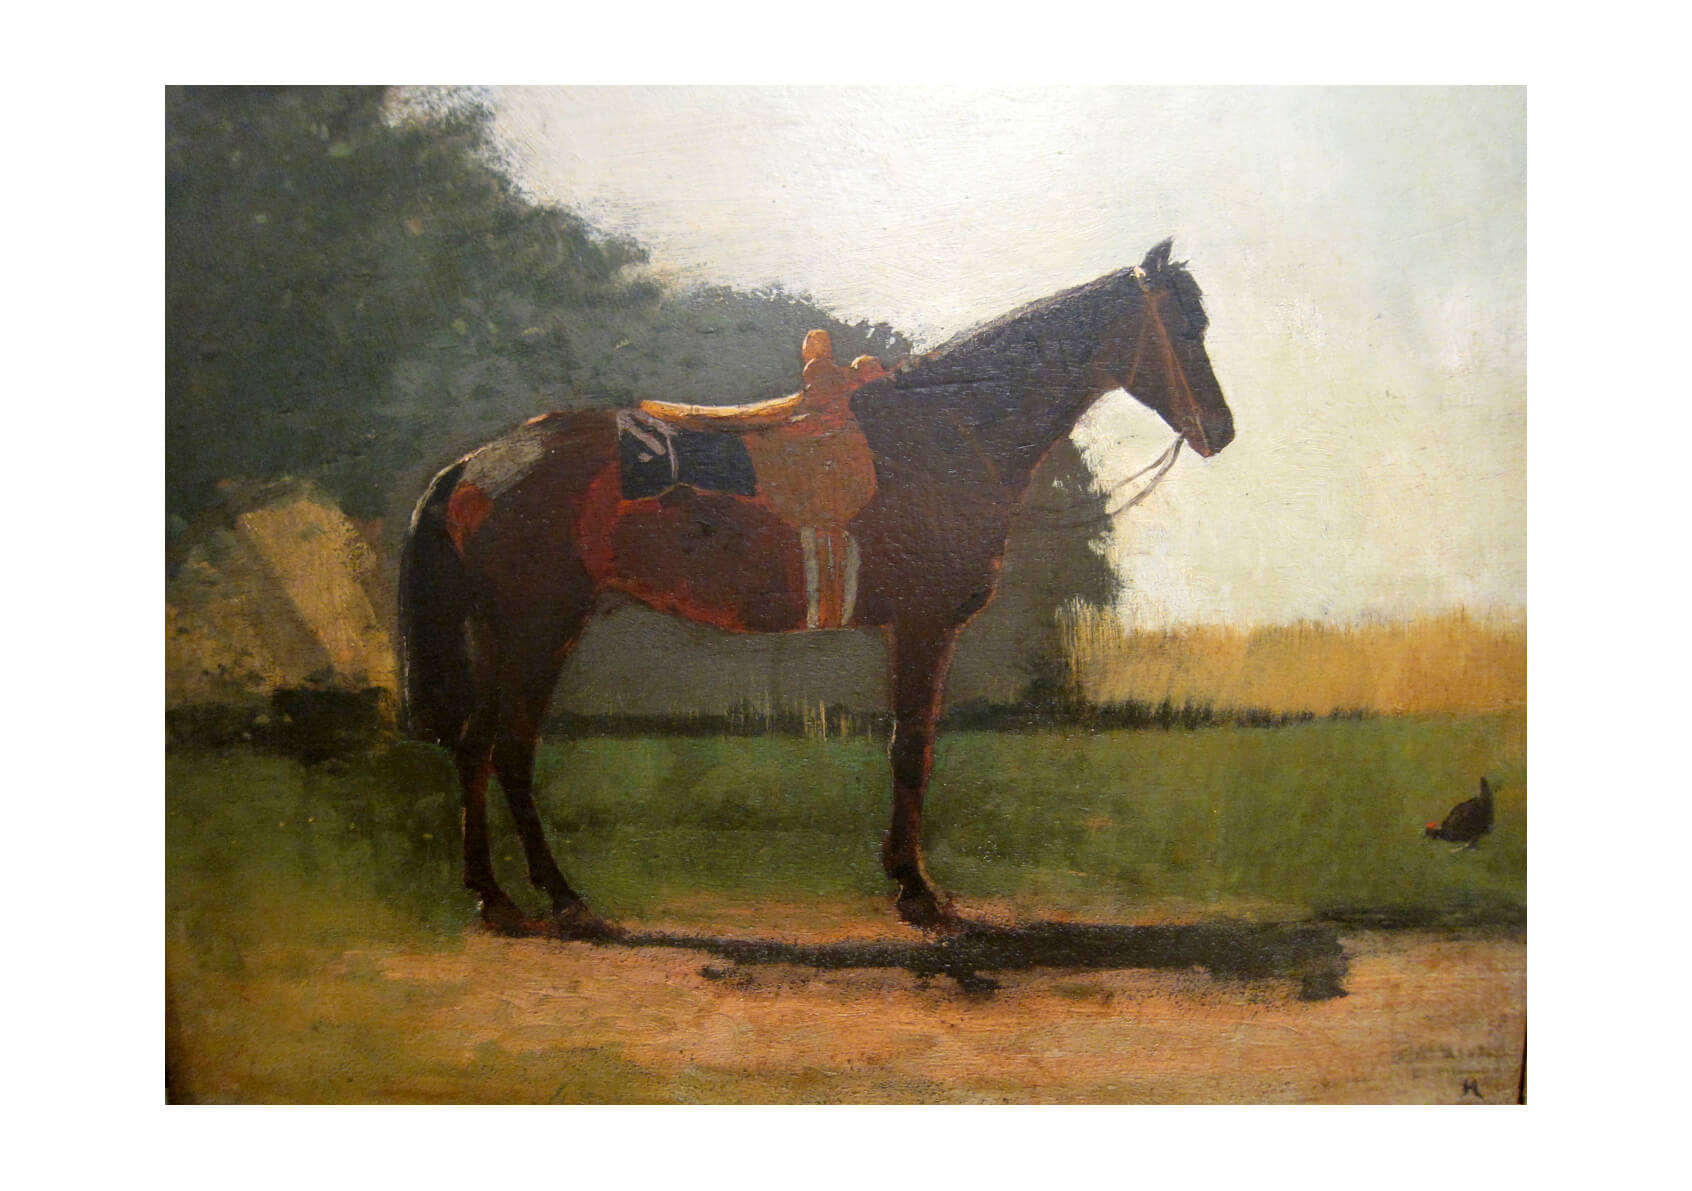 Winslow Homer - Saddle Horse in Farm Yard